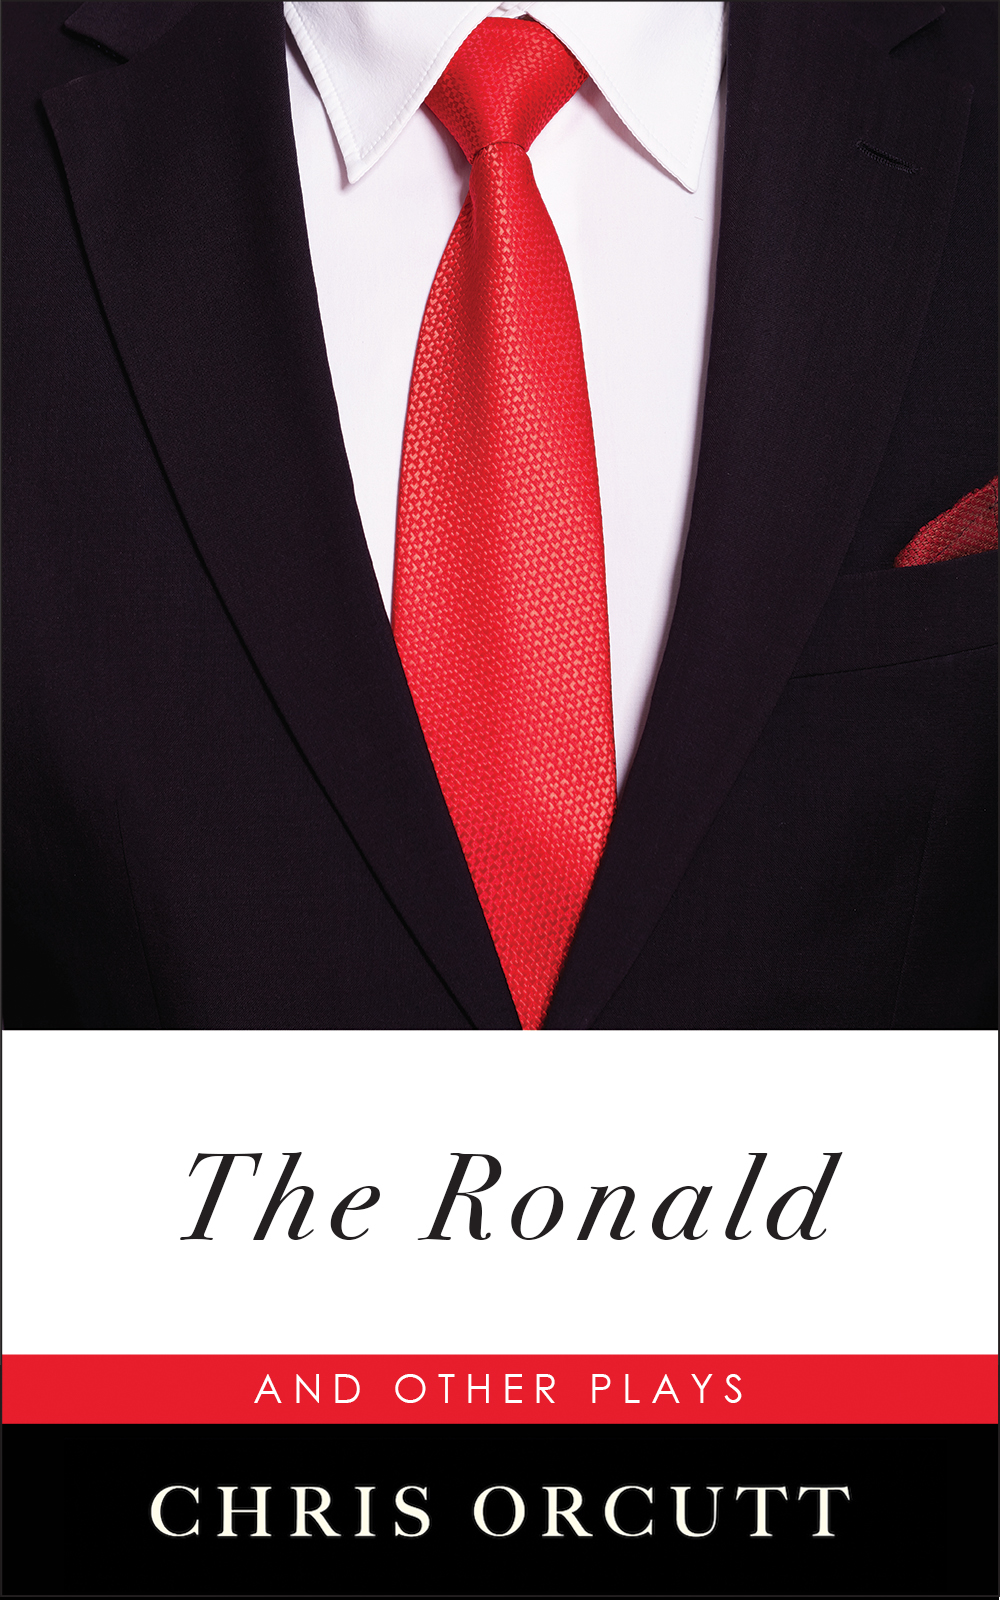 The_Ronald_cover_300dpi